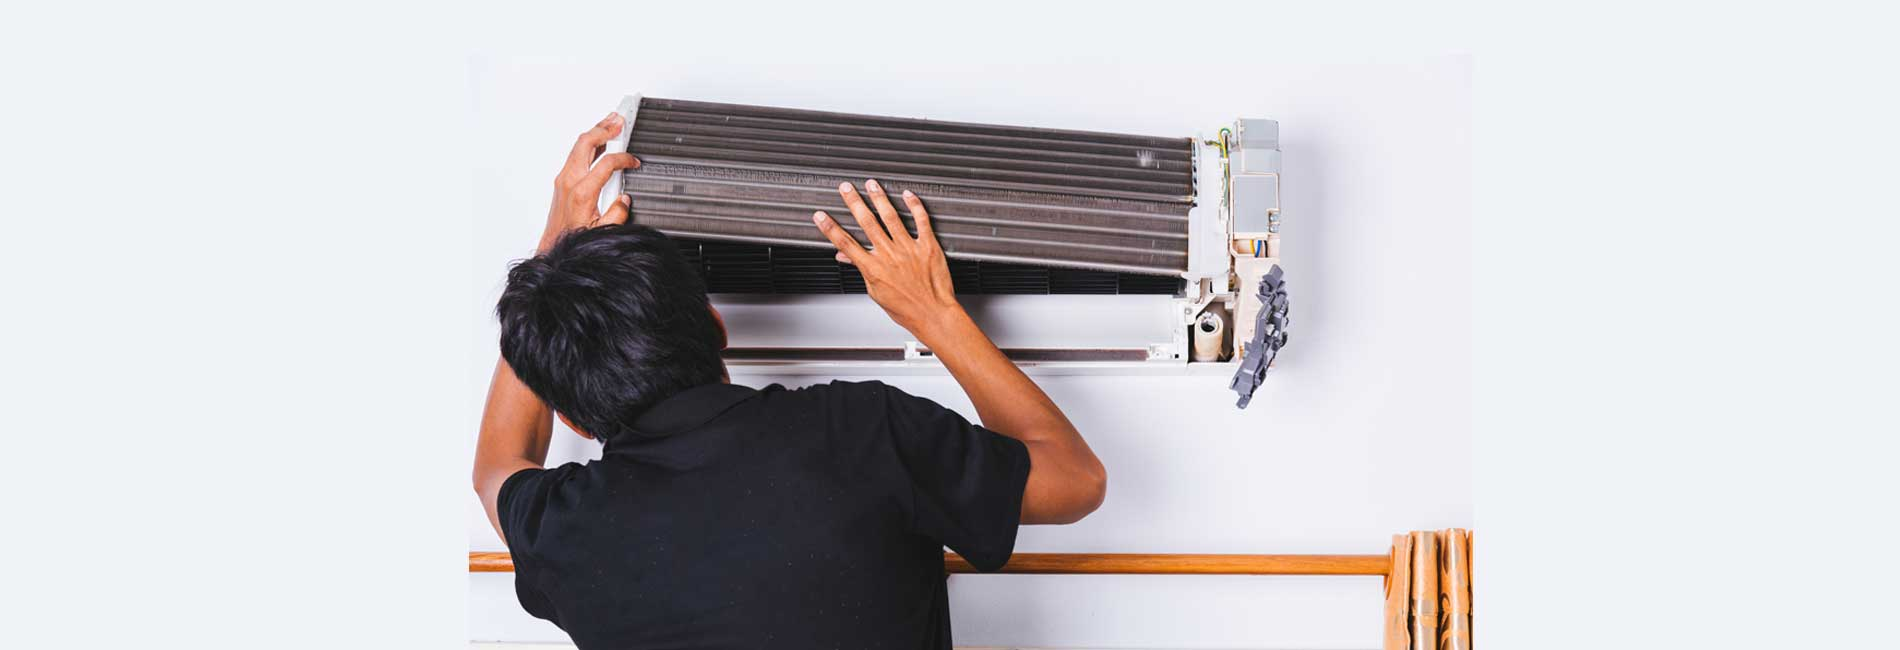 Panasonic AC Repair in Sunnambu kolathur